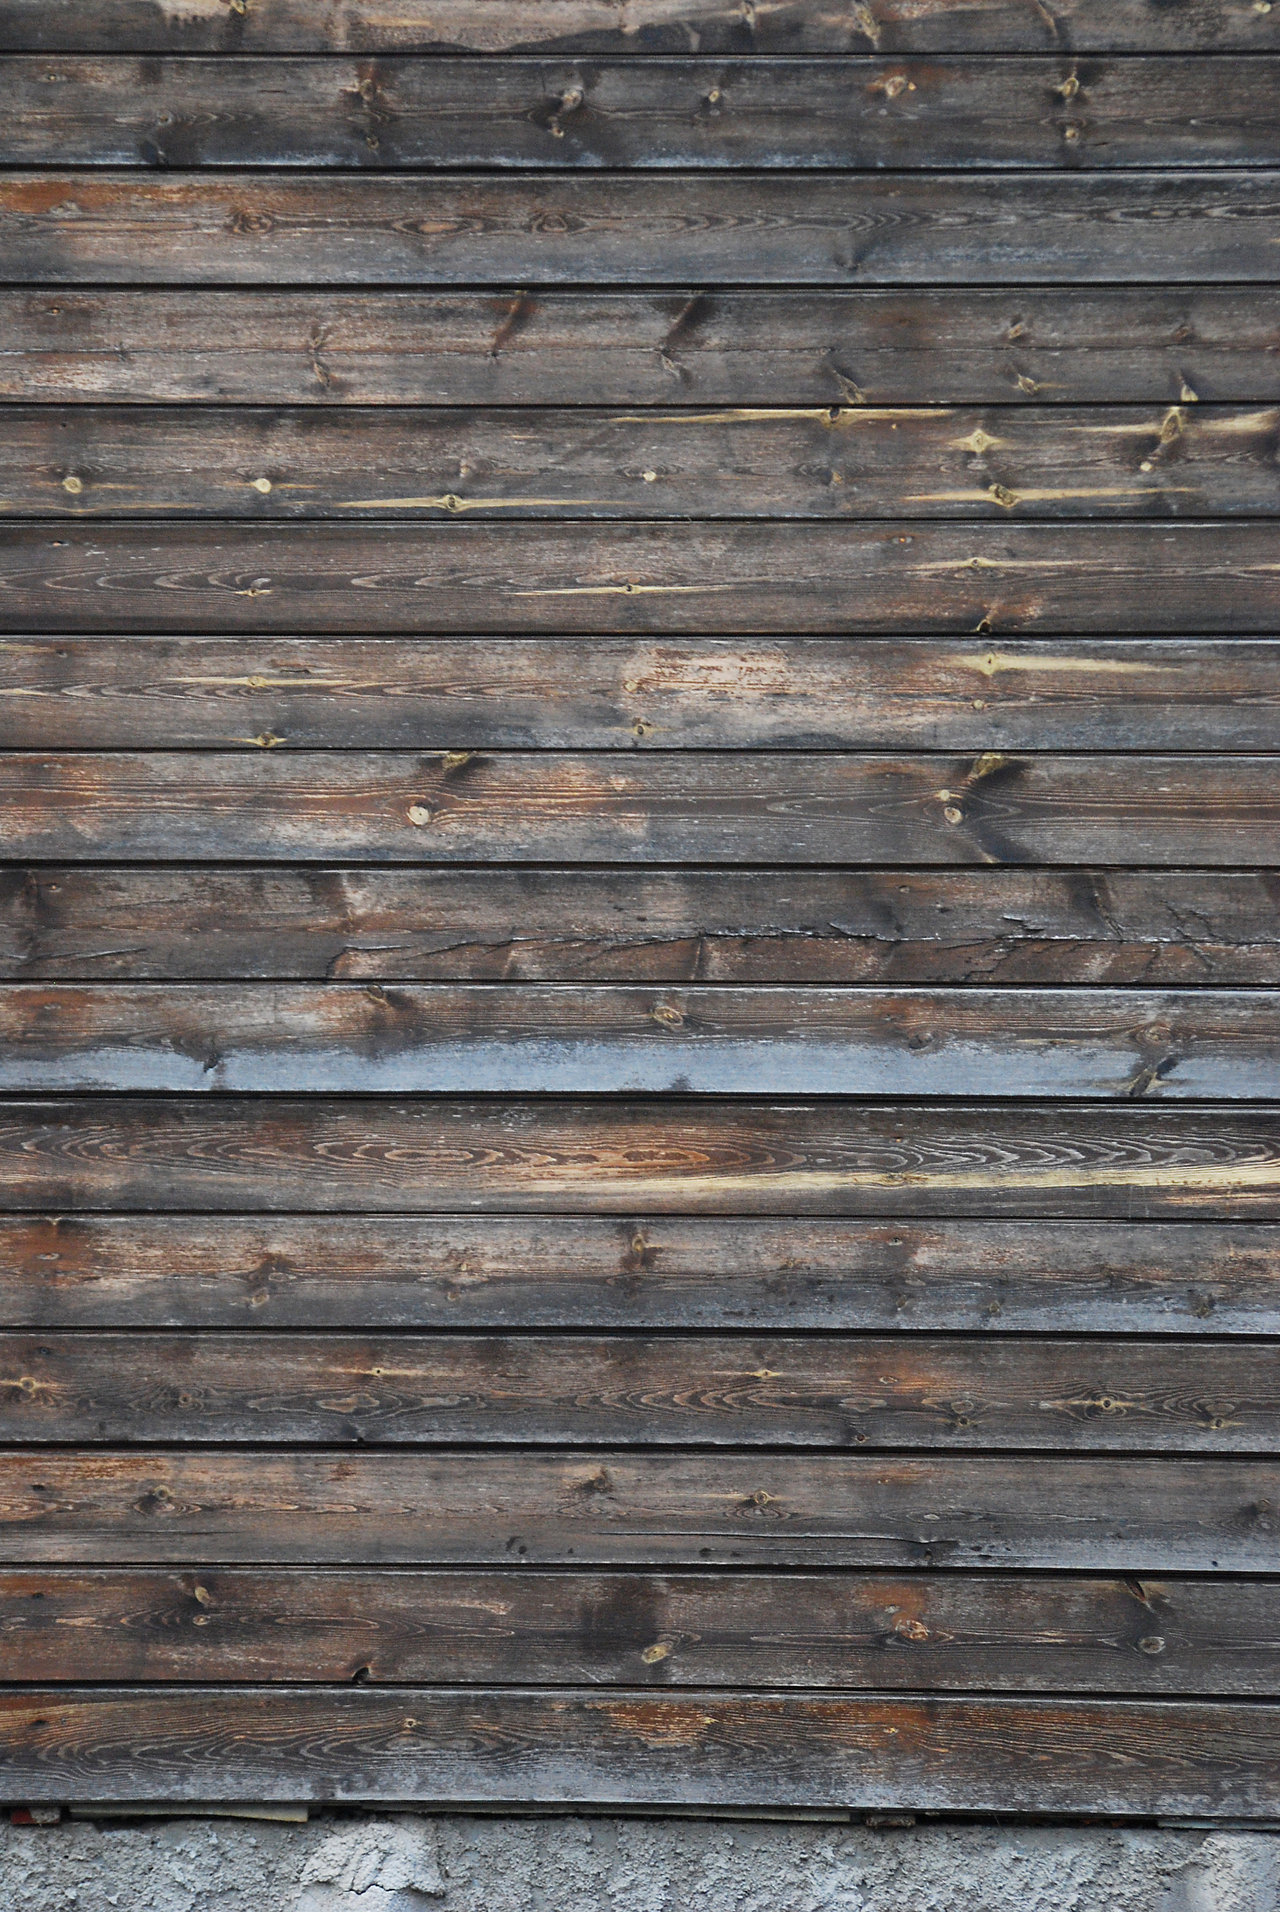 Weathered wood Planks 2 by Nikolaou 1280x1912